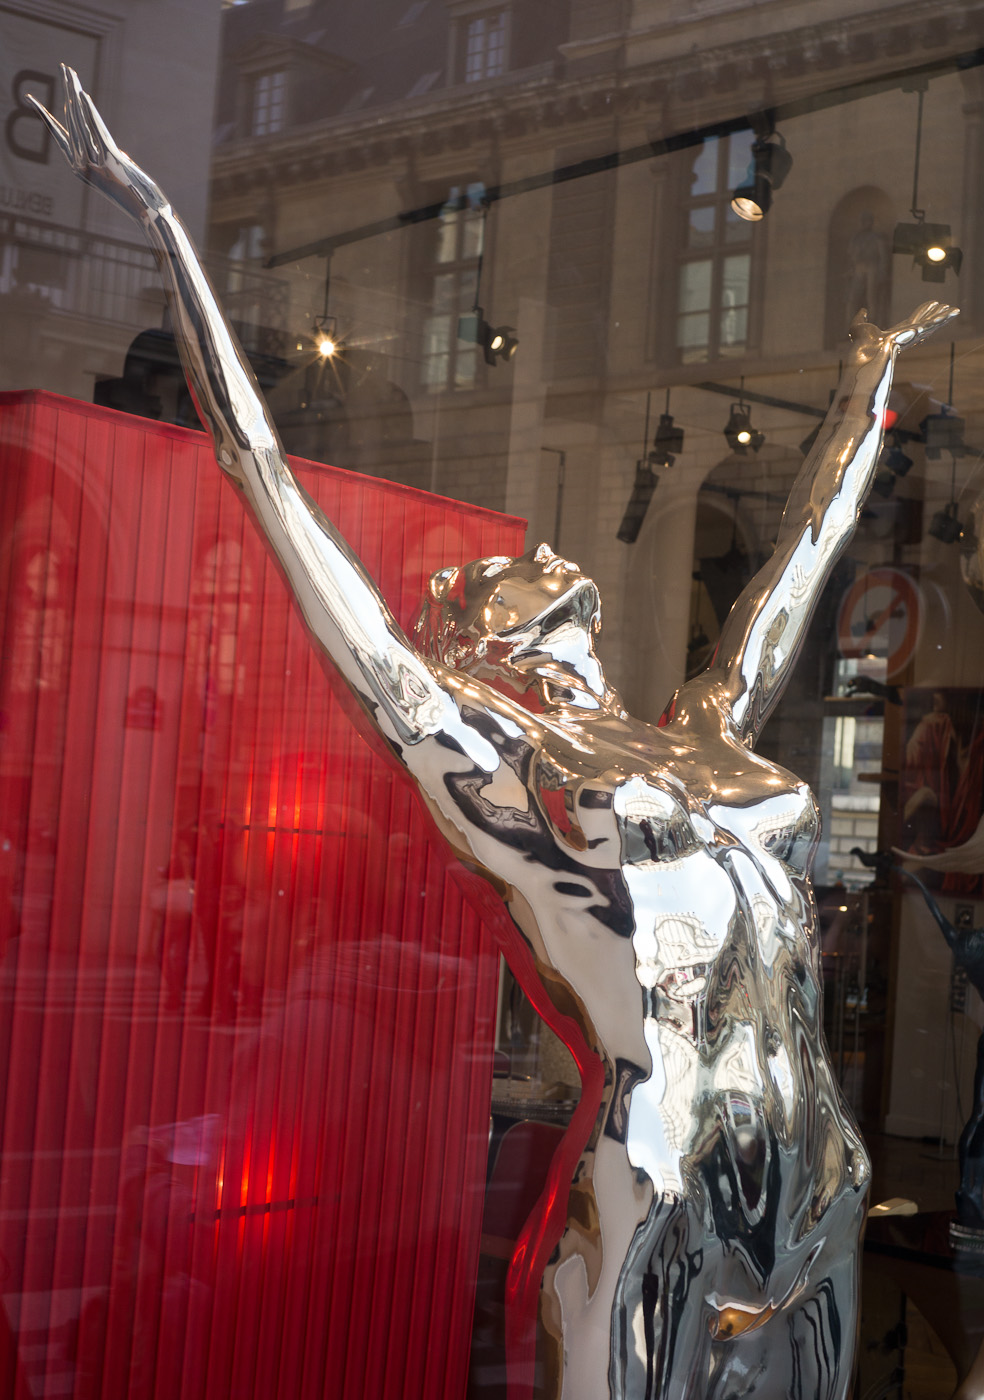 A silver statue of a naked woman facing the sky with her arms reaching up. Sony NEX-5n and Zeiss ZM 25/2.8